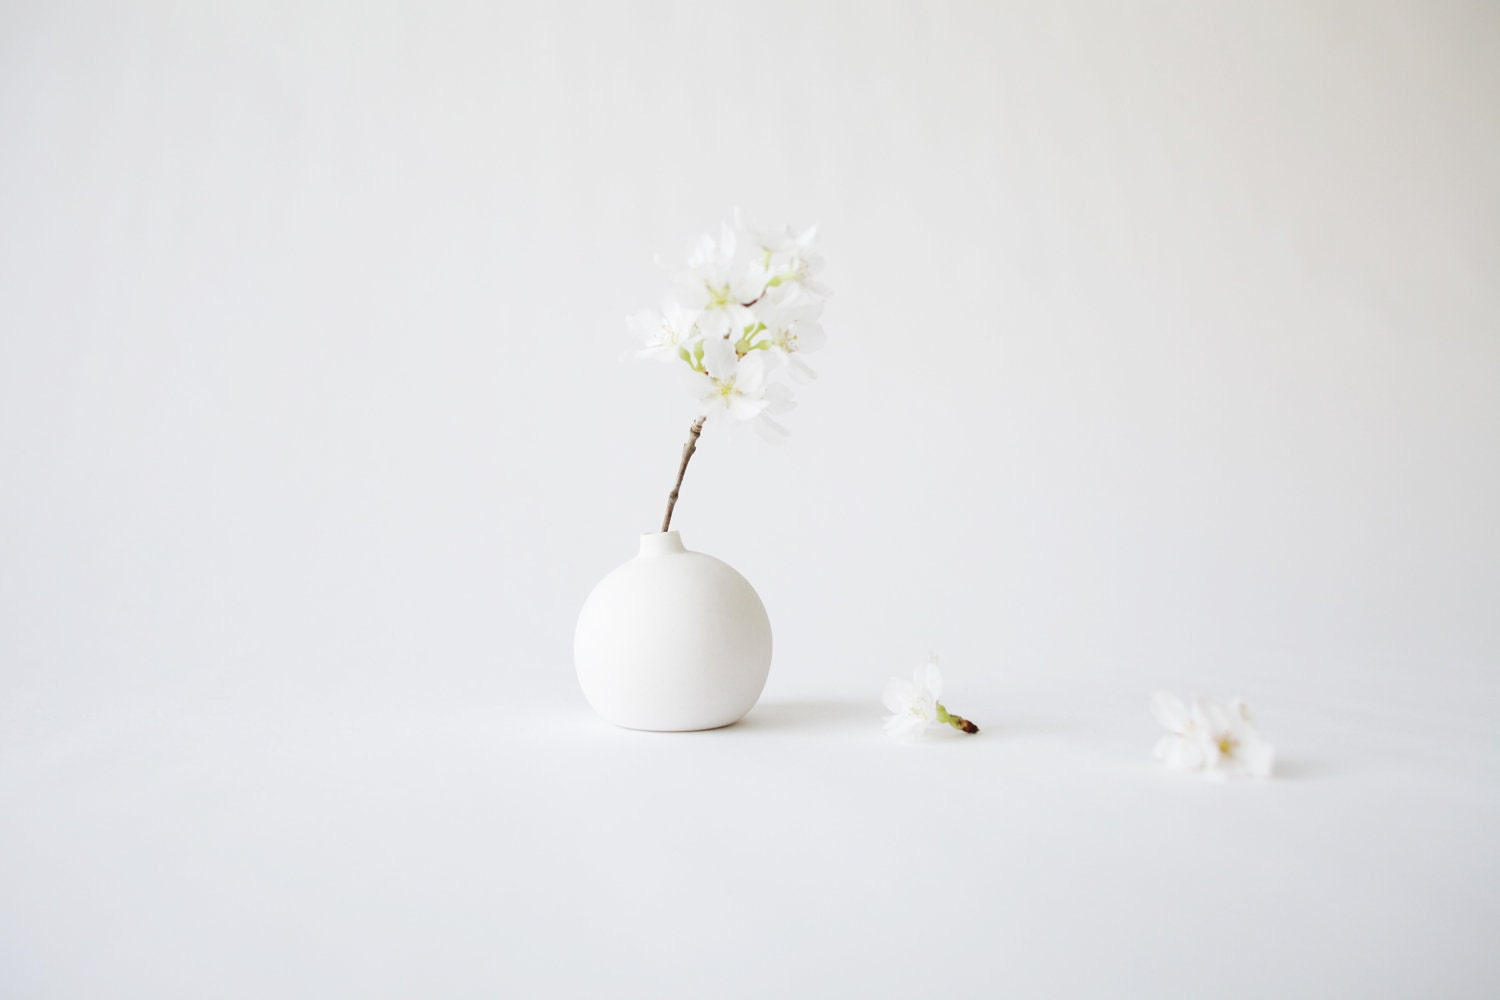 Small porcelain bud vase